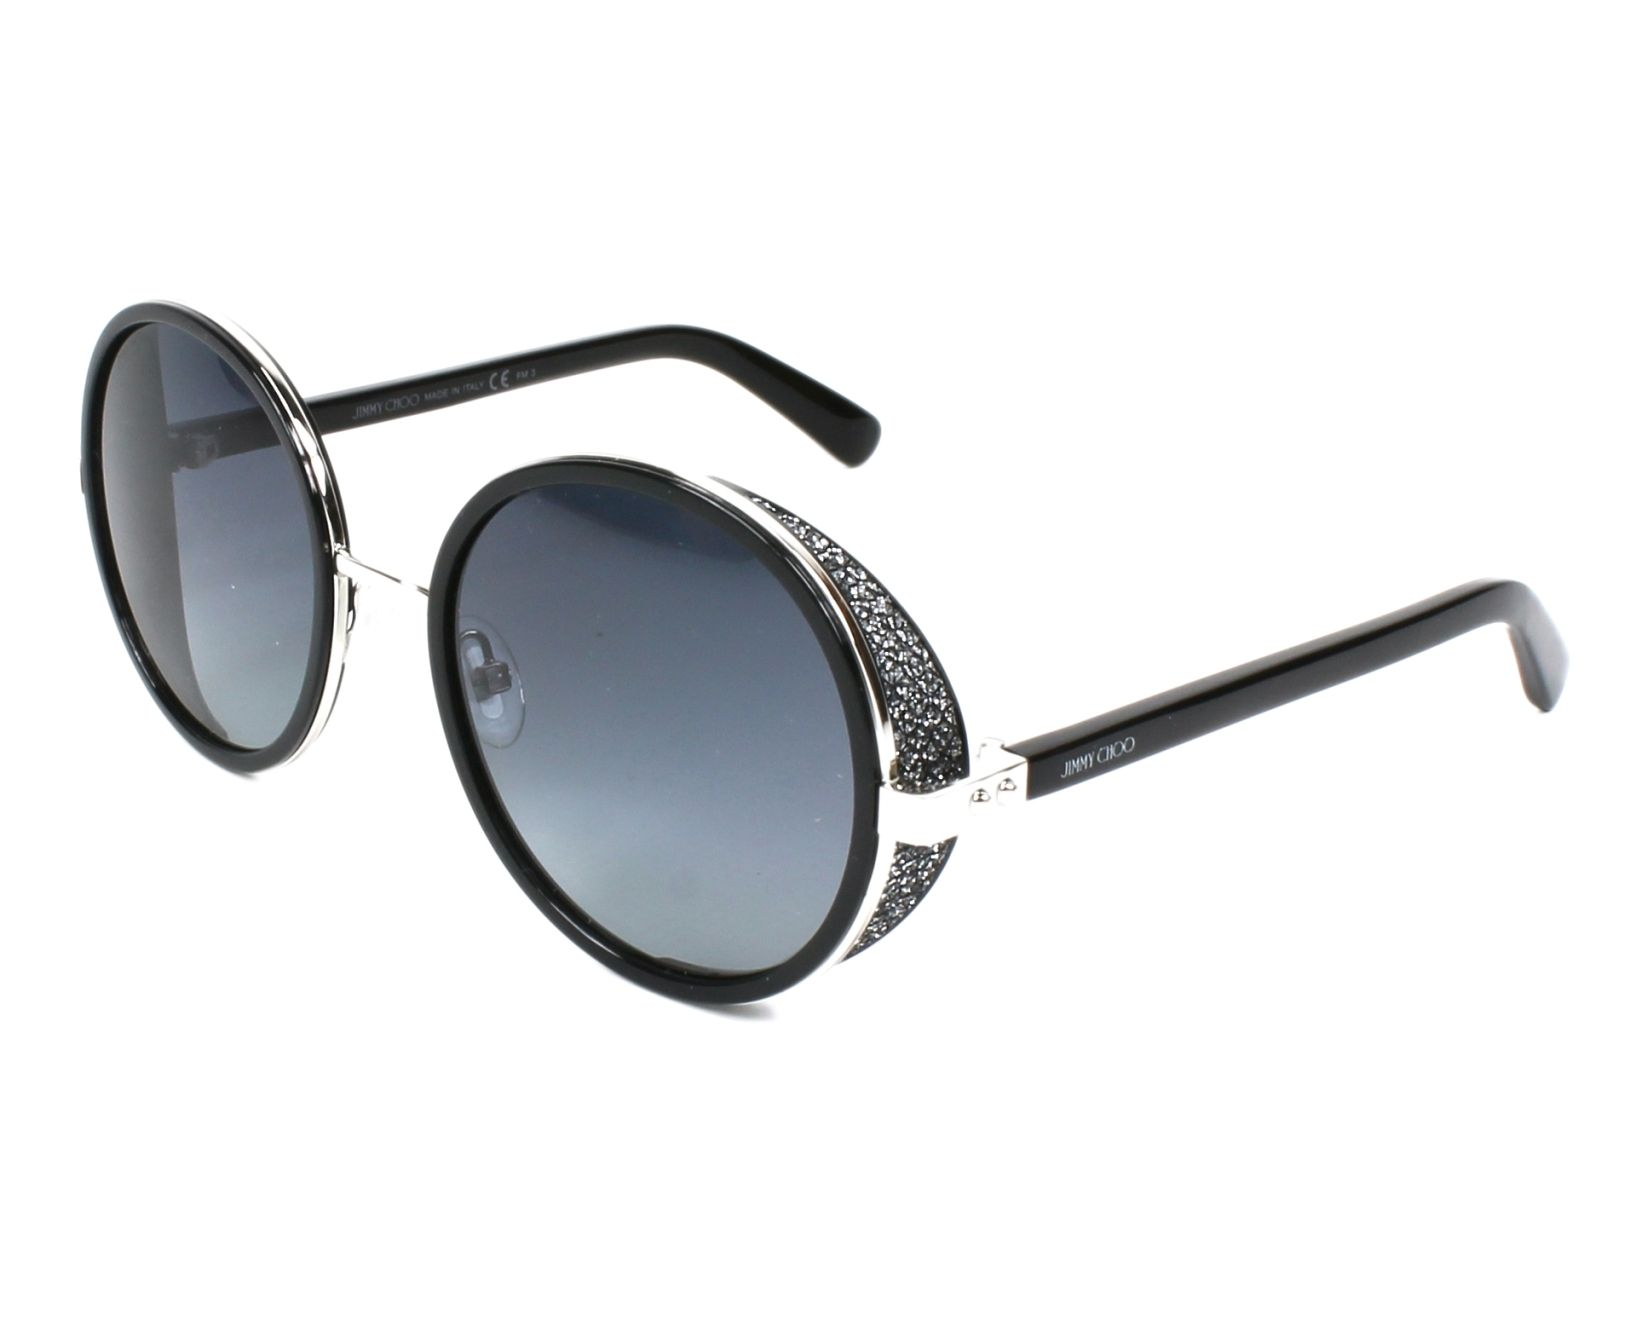 450adc5dc98b thumbnail Sunglasses Jimmy Choo ANDIE-S B1A HD - Black Silver profile view